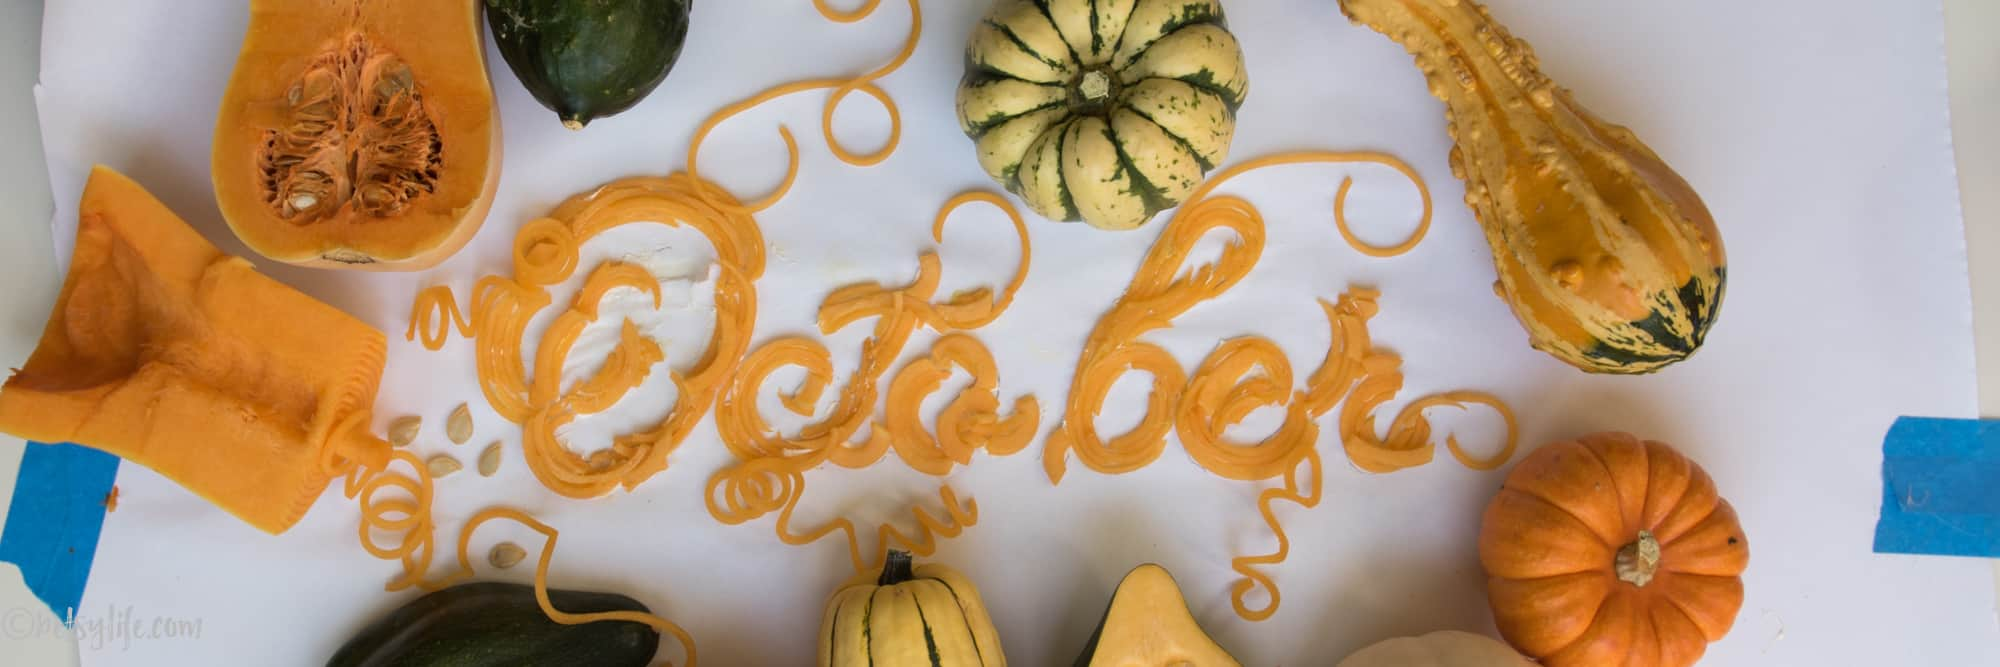 creative food styling with squash spelling out October